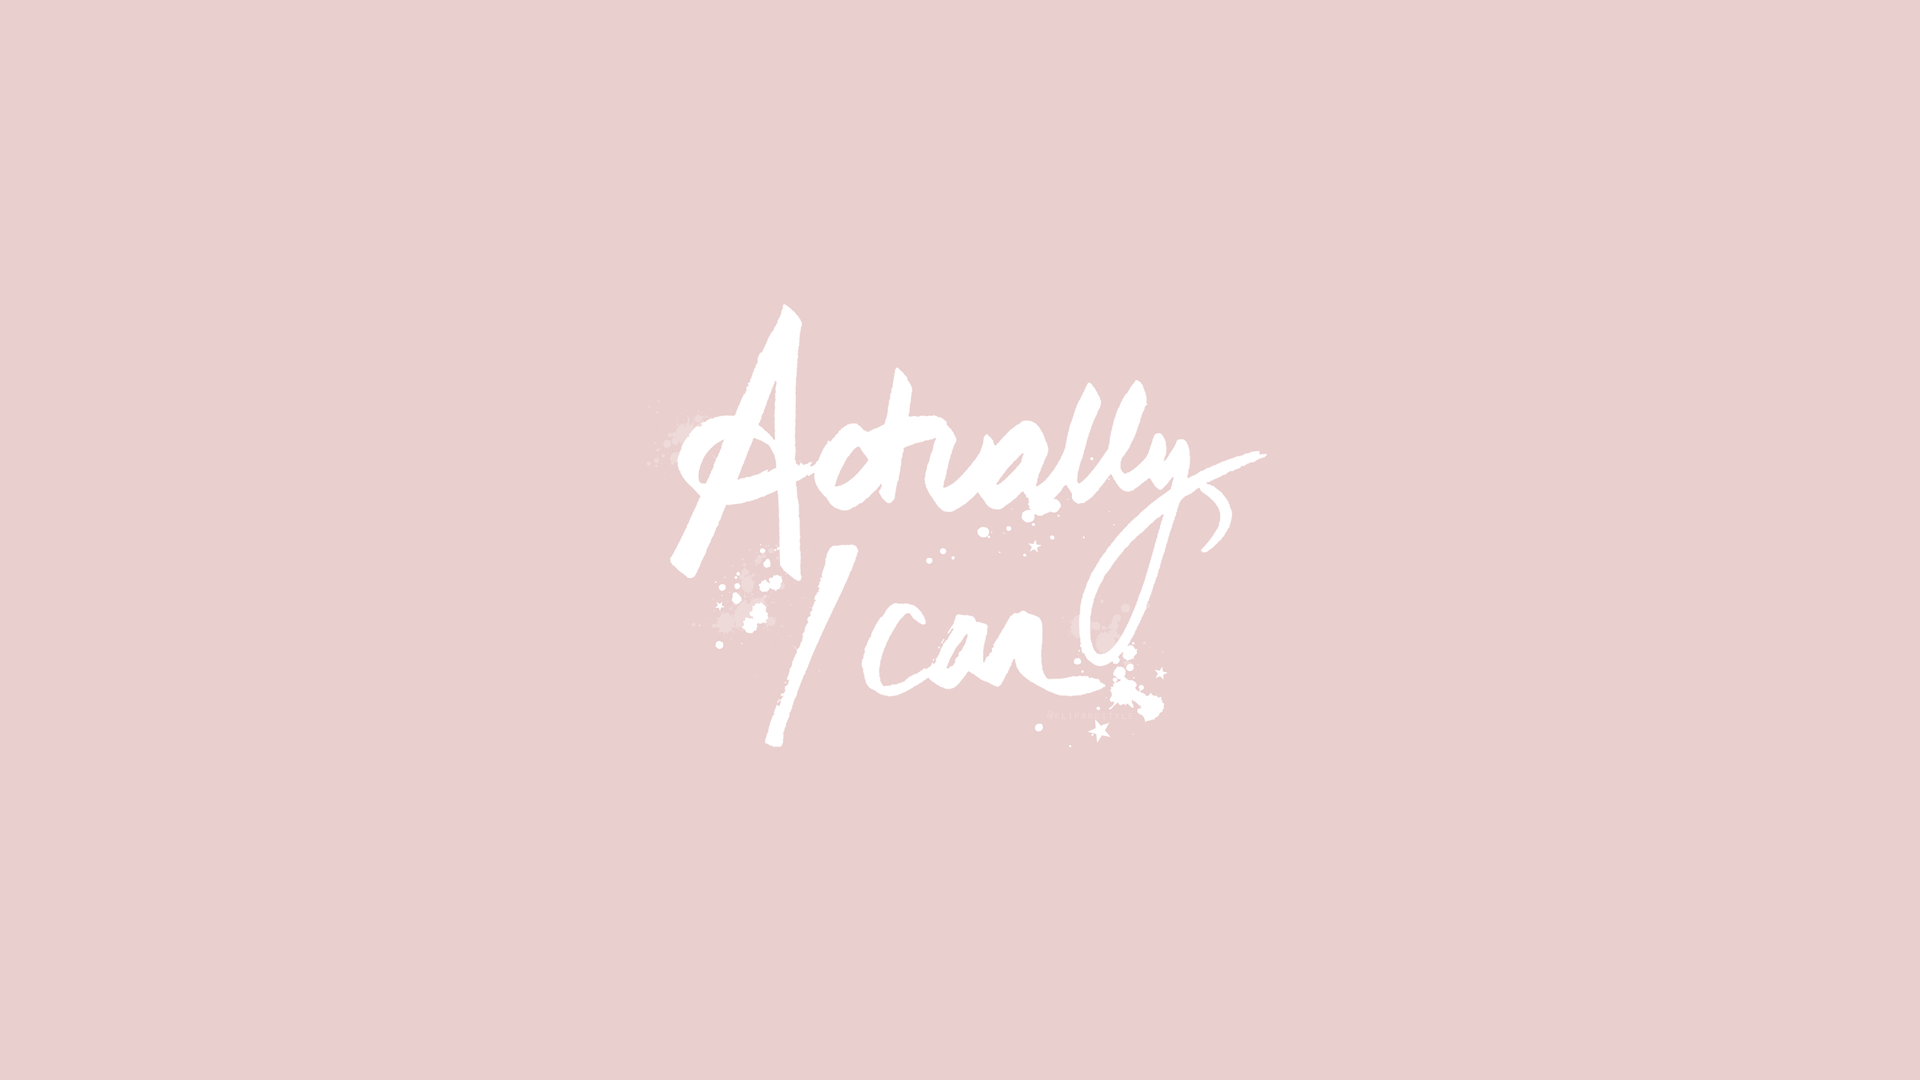 Actually Desktop Png 1 920 1 080 Pixels Laptop Wallpaper Macbook Wallpaper Free Desktop Wallpaper